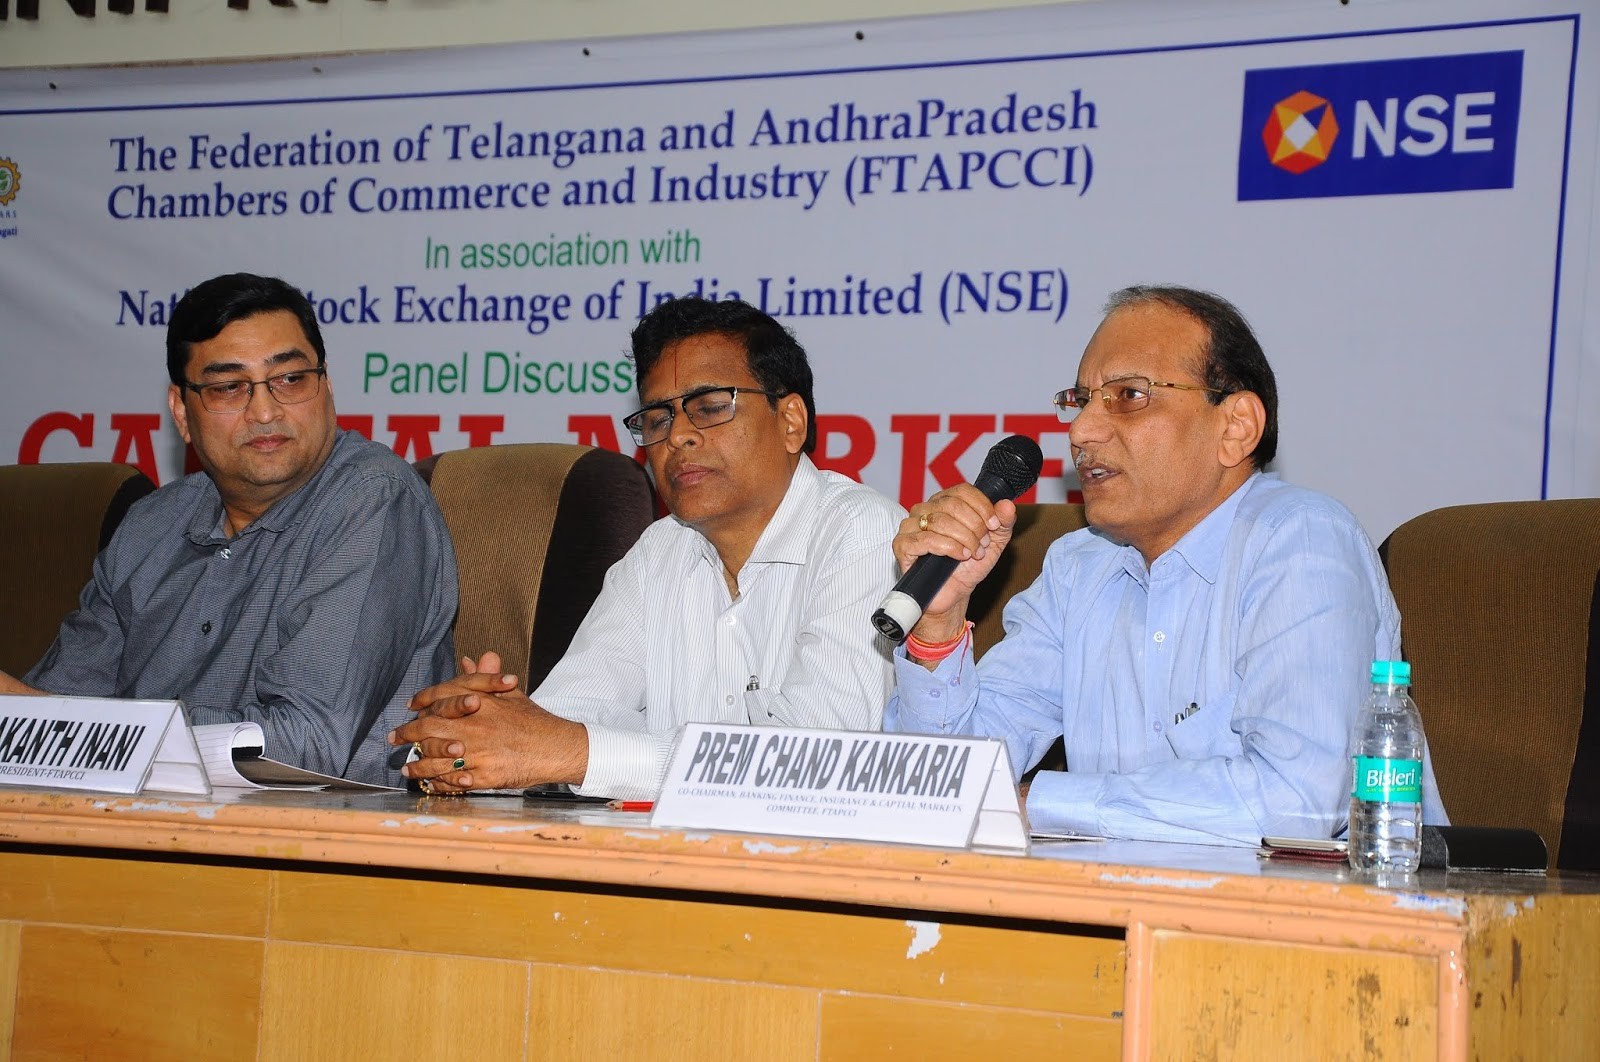 The Federation of Telangana Chambers of Commerce and Industry (FTCCI